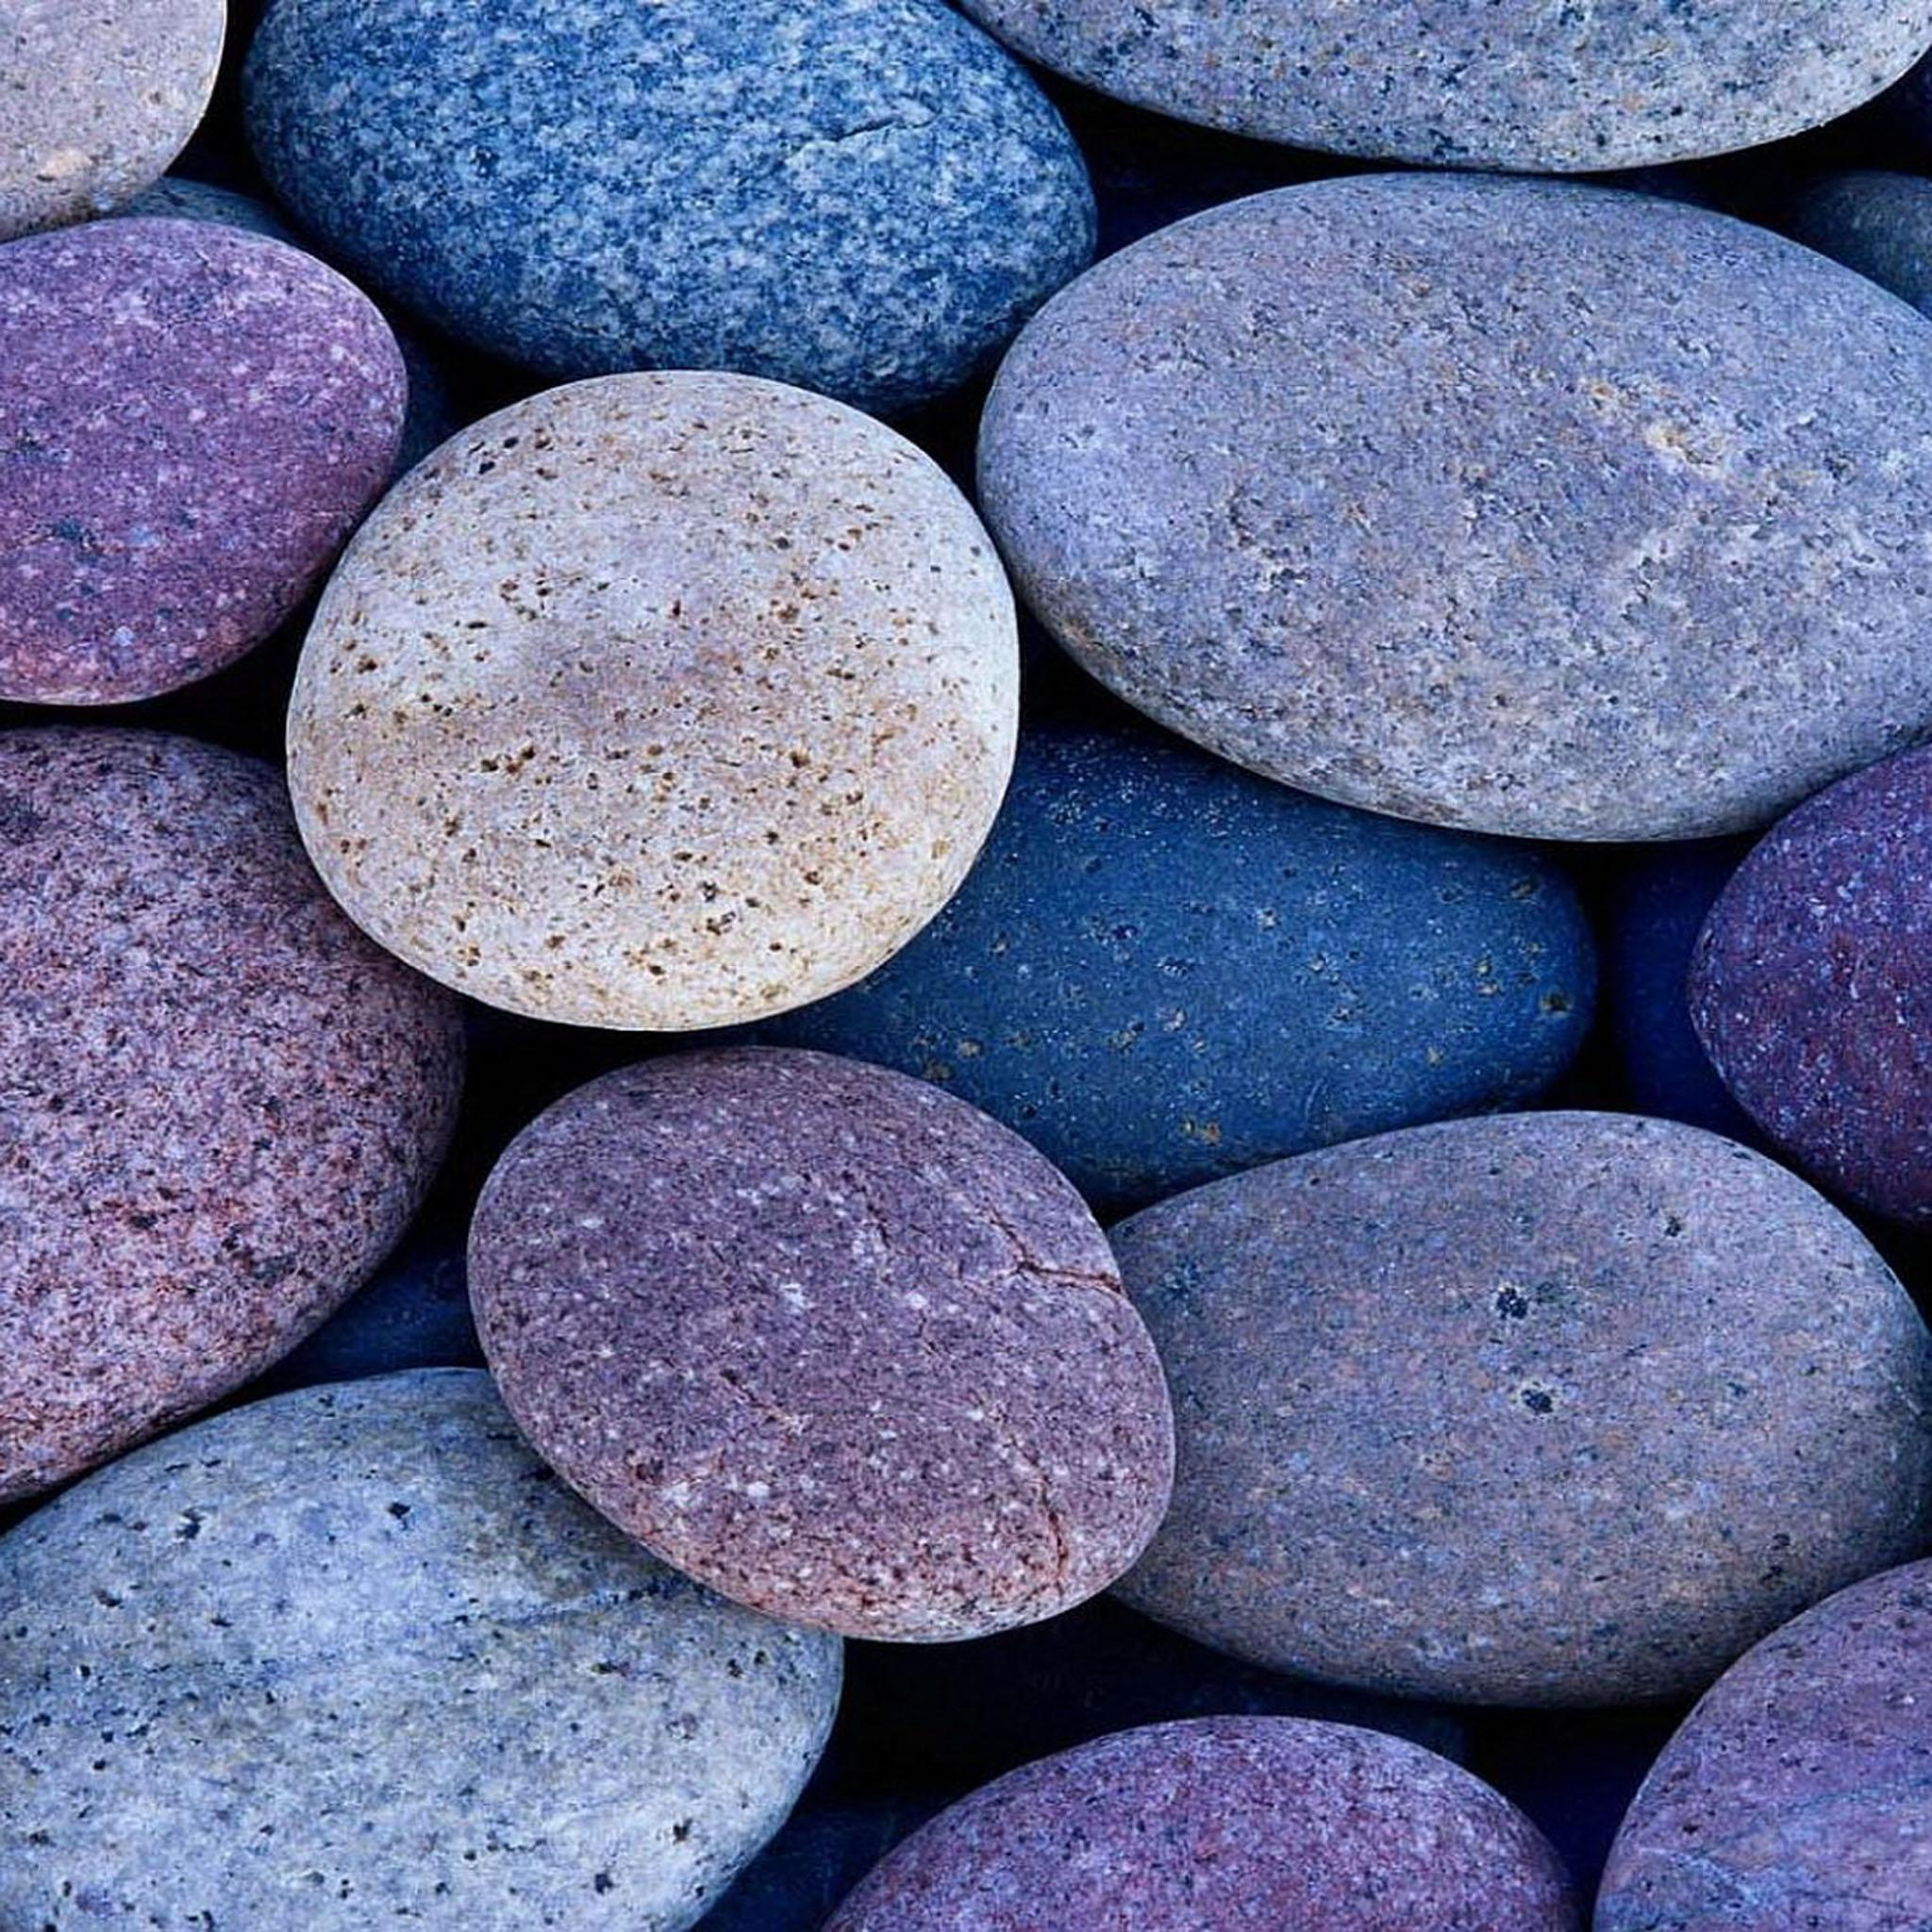 ipad retina hd wallpaper stones - ipad, ipad air, ipad pro, ios 11